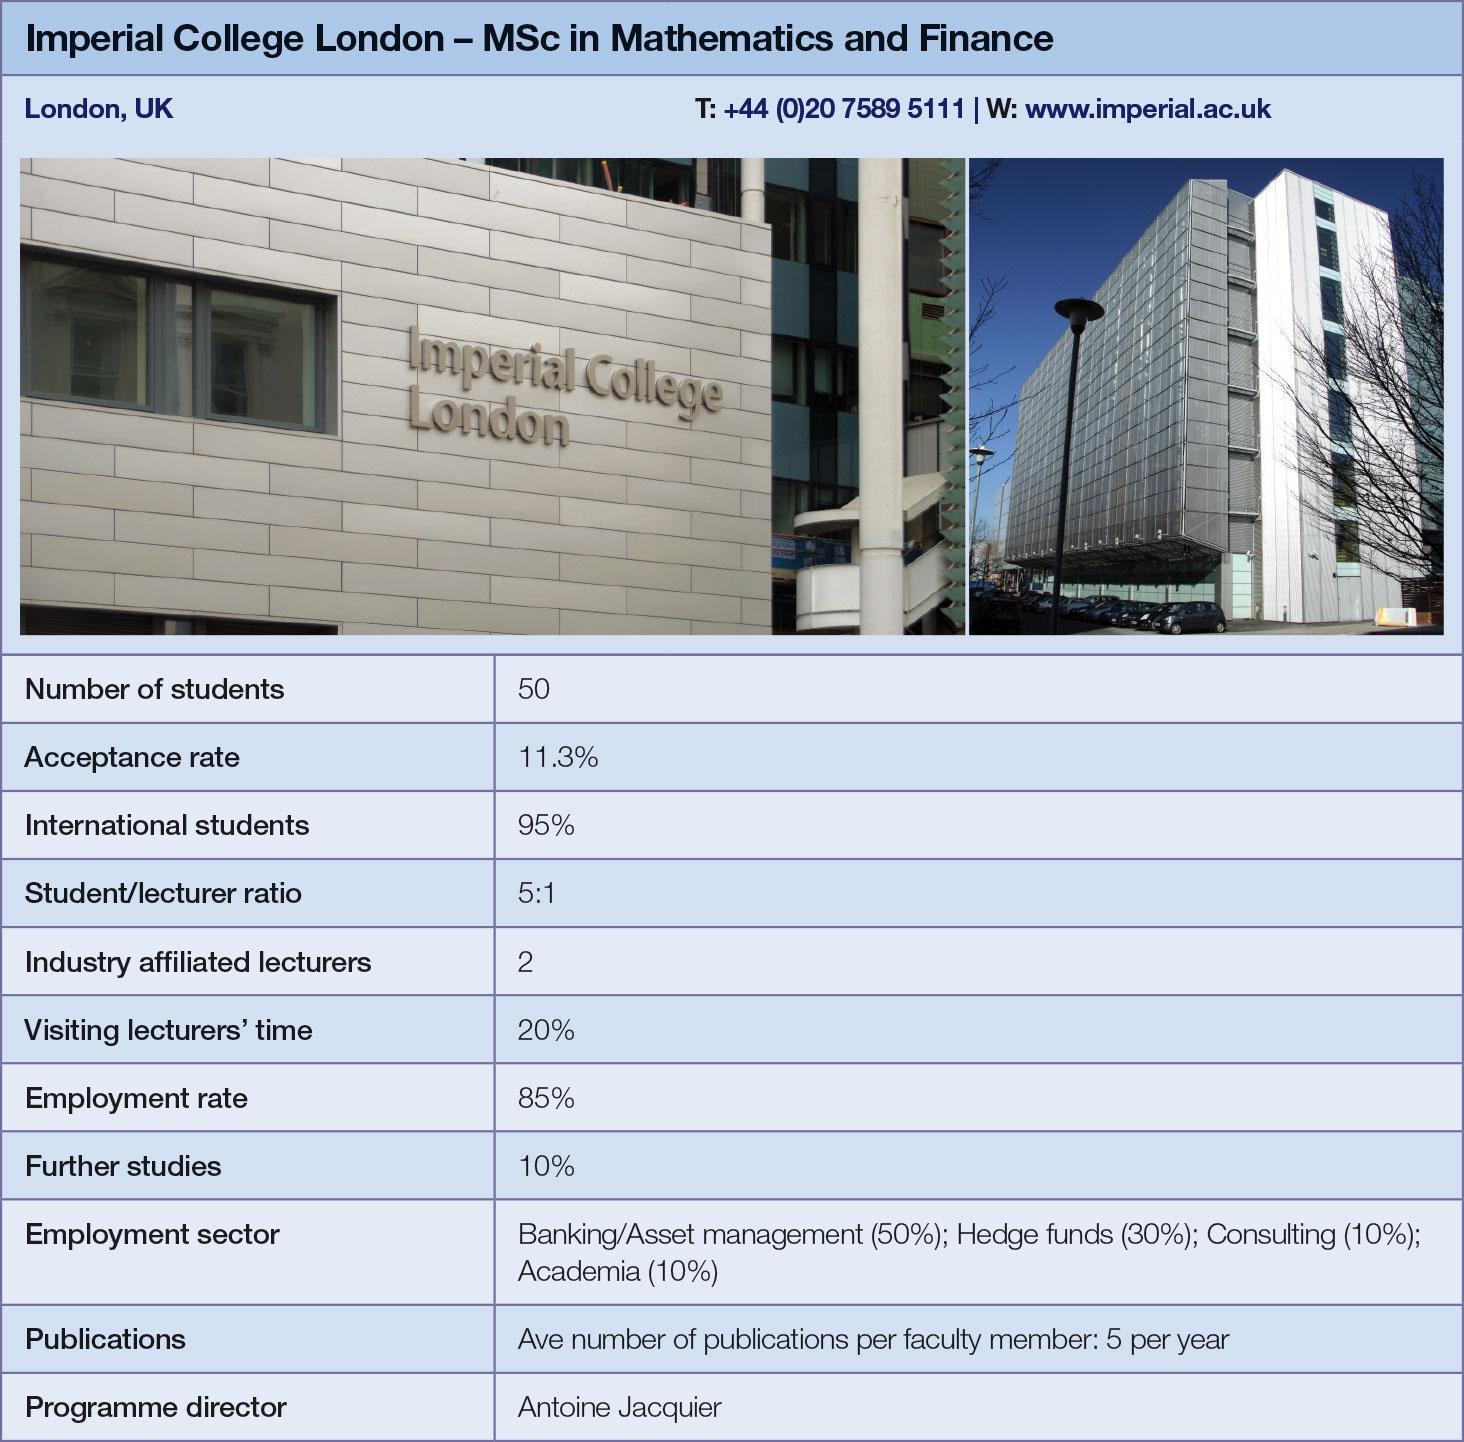 Imperial College London metrics